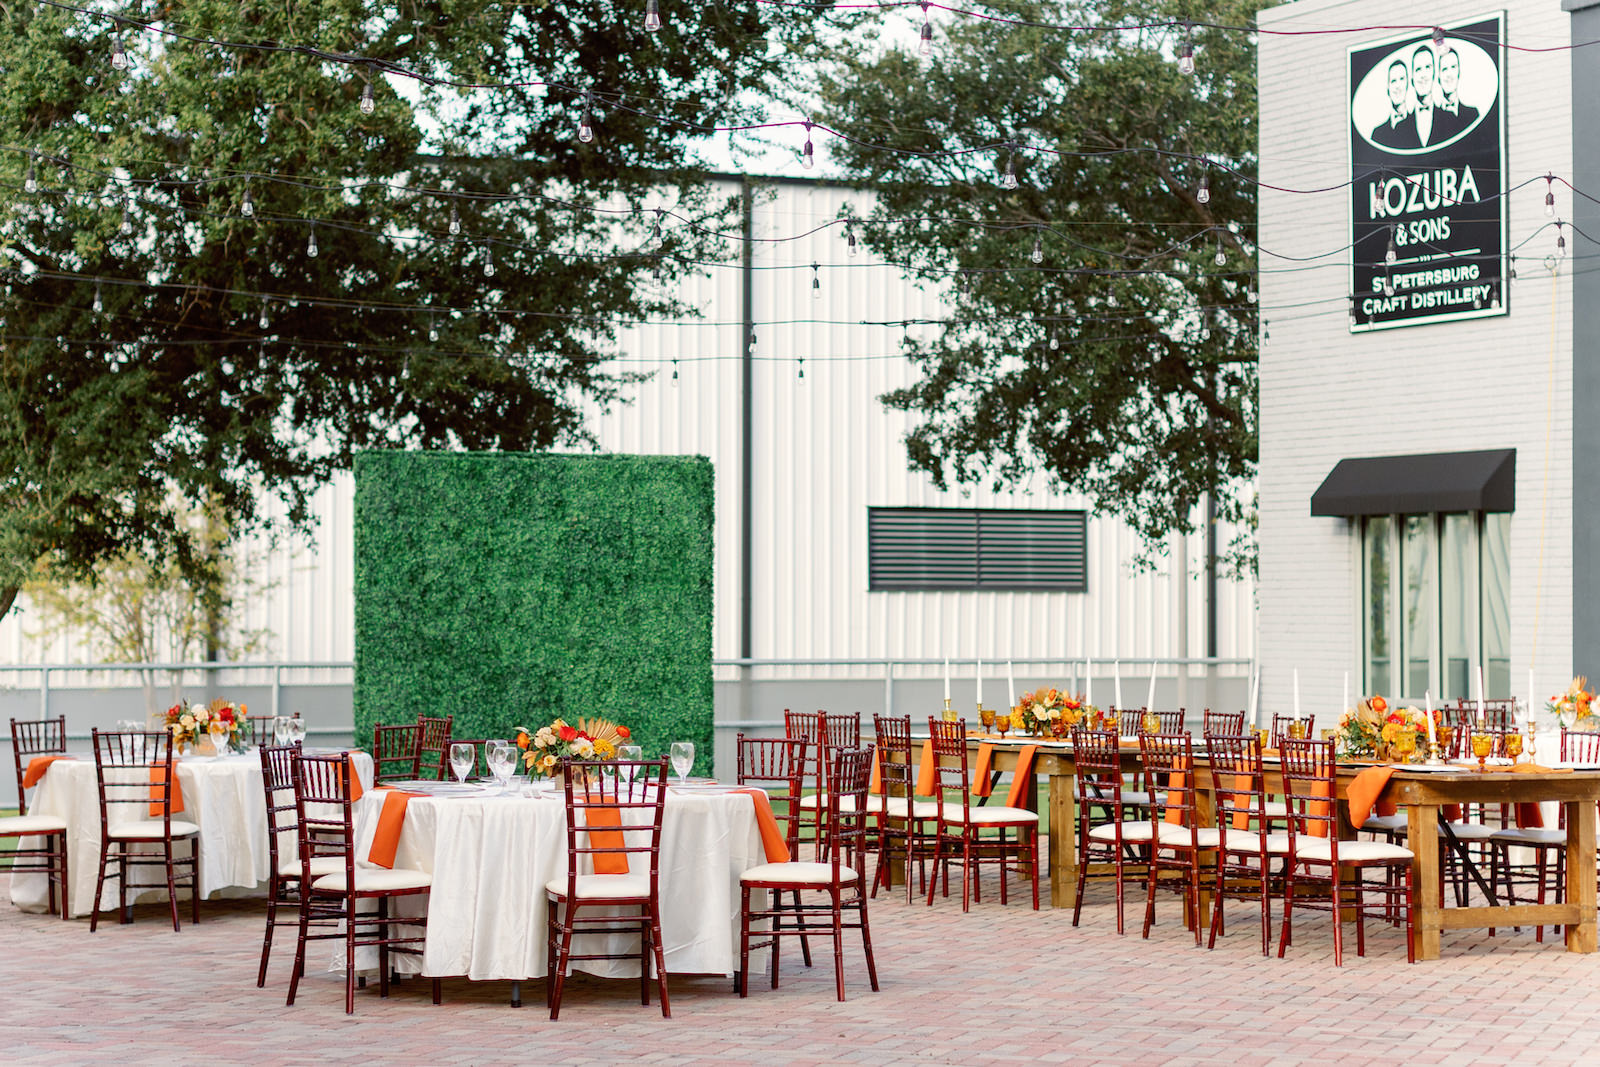 Boho Inspired Florida Wedding Reception and Decor, Autumn Wedding Theme with Warm Color Palette, Dark Red Chiavari Rental chairs, Round Tables with White Tablecloths and Burnt Orange Linens, Low Floral Centerpieces with Yellow Crystal Goblets, Greenery Boxwood Wall   Kozuba & Sons St. Petersburg Craft Distillery   Tampa Bay Wedding Planner Coastal Coordinating